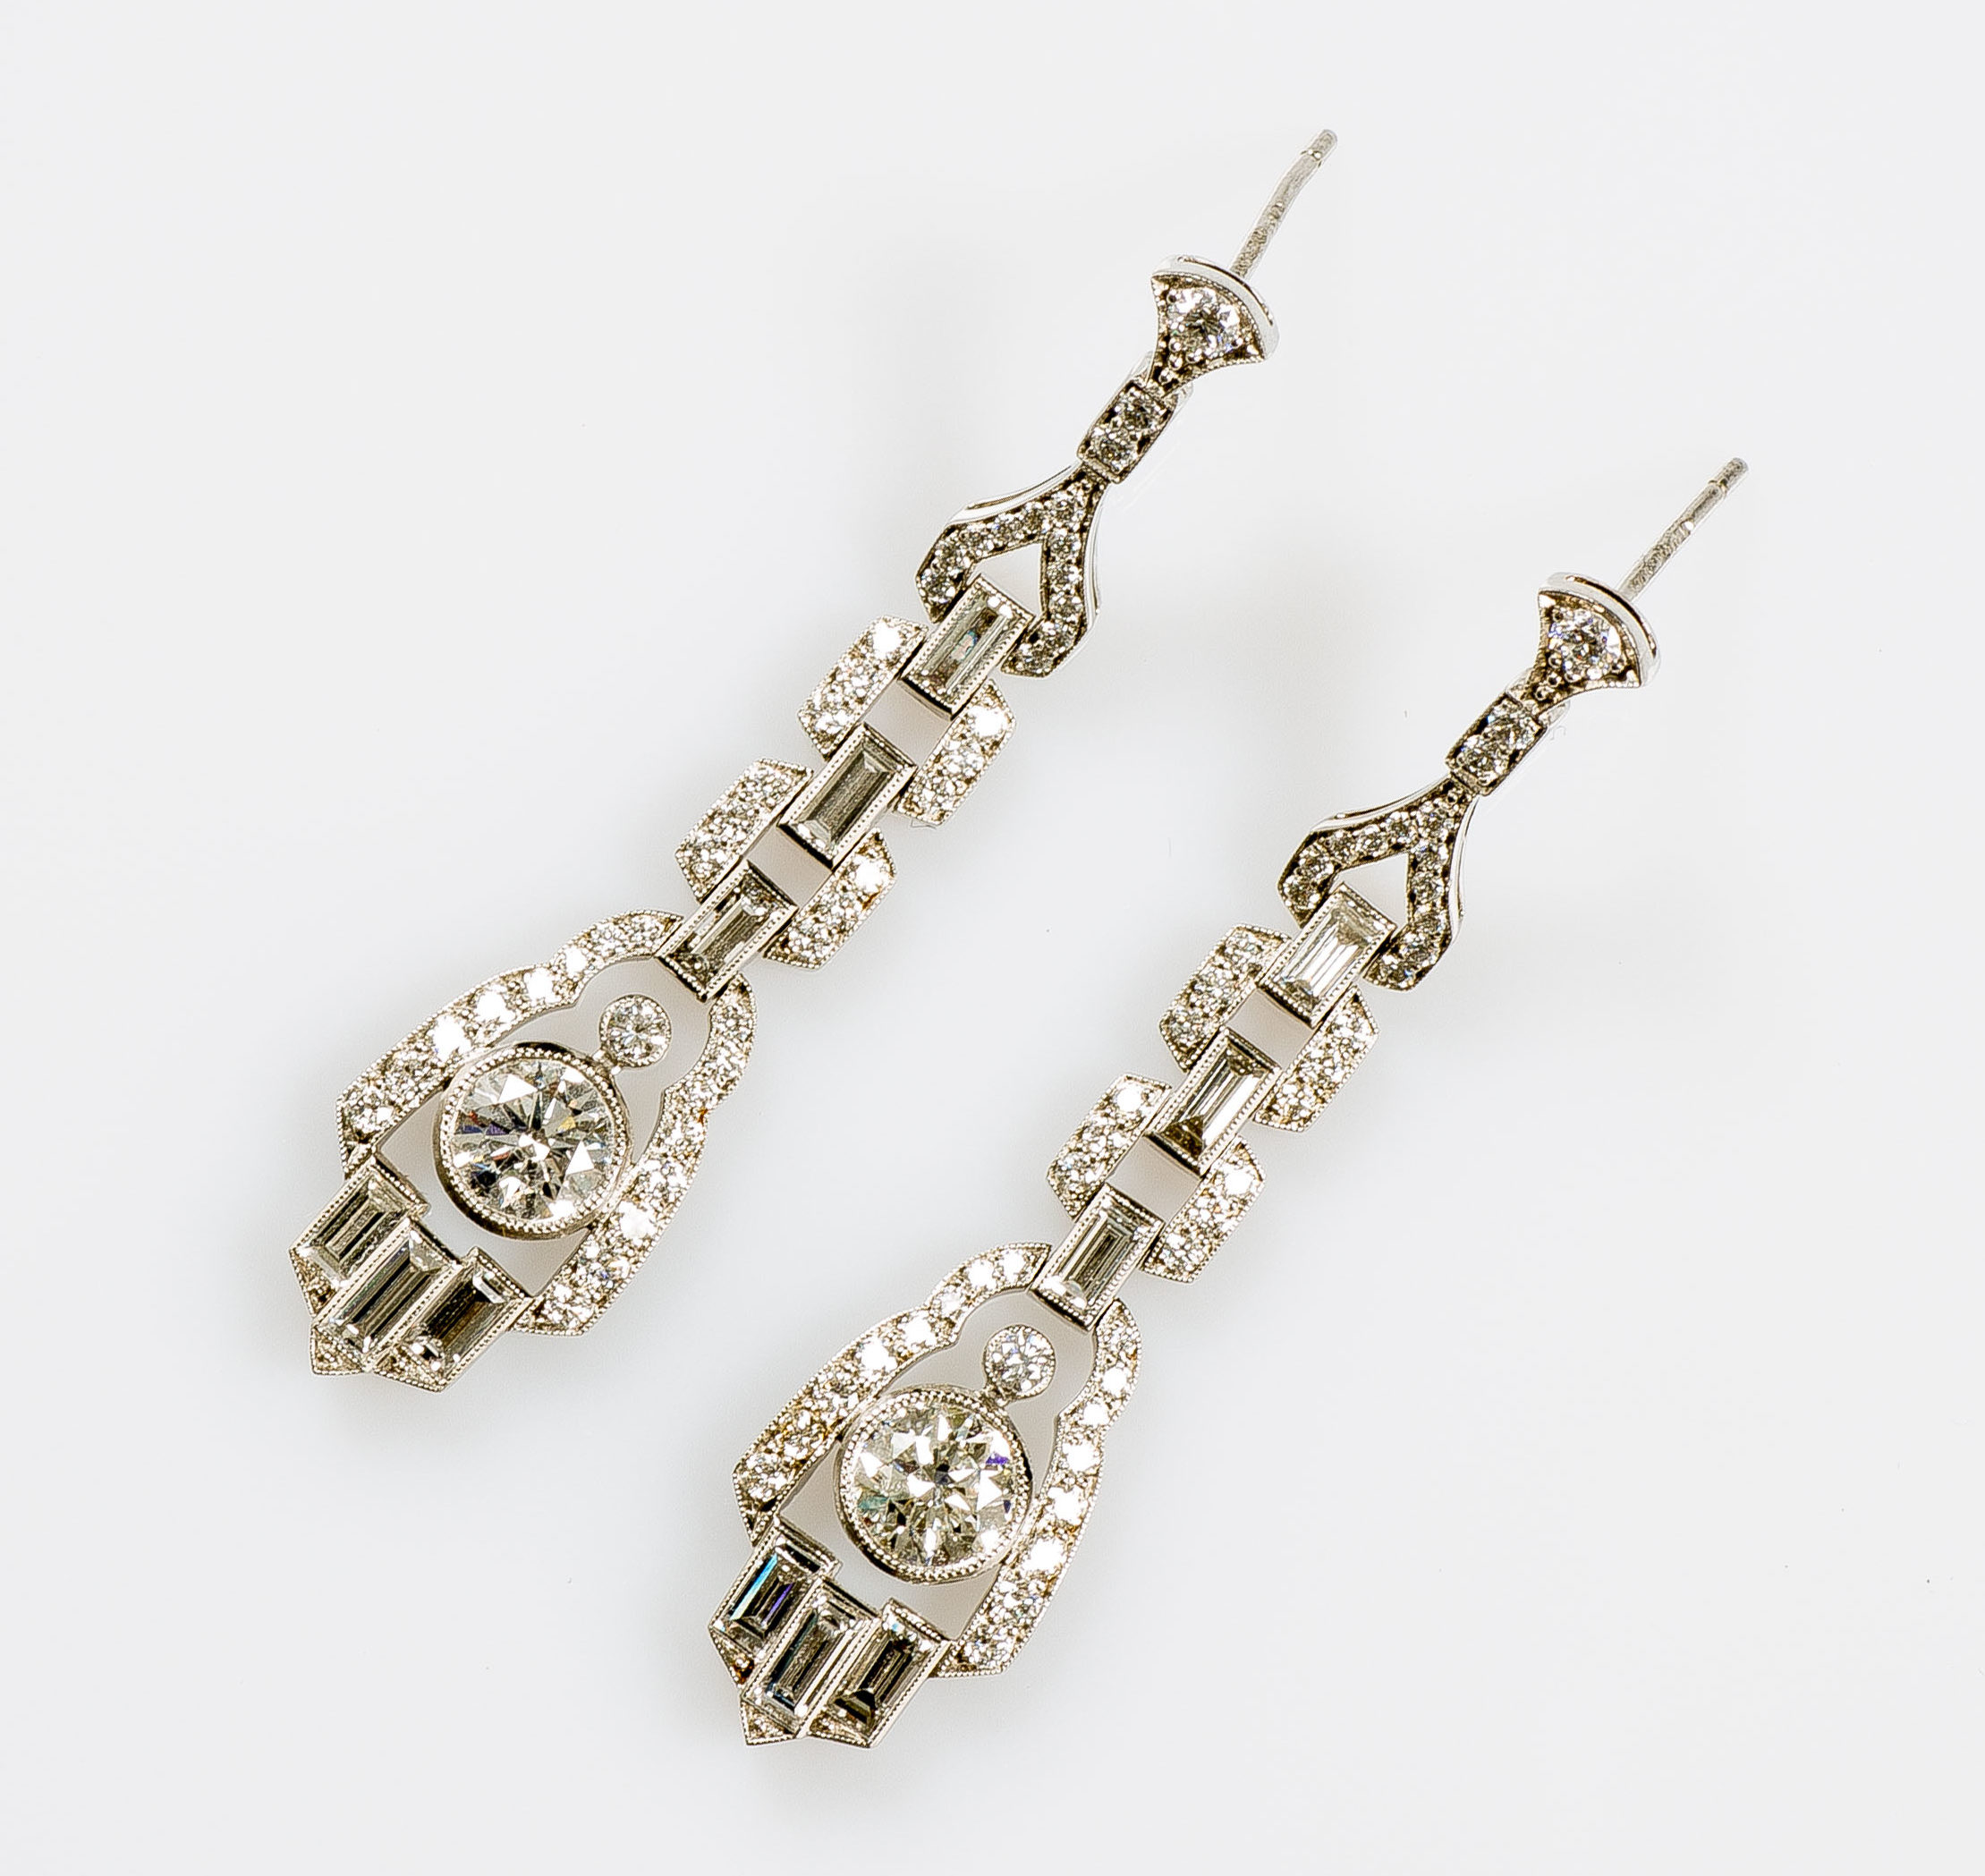 Art Deco Style Earrings Uk Pair Of Platinum Art Deco Style Earrings